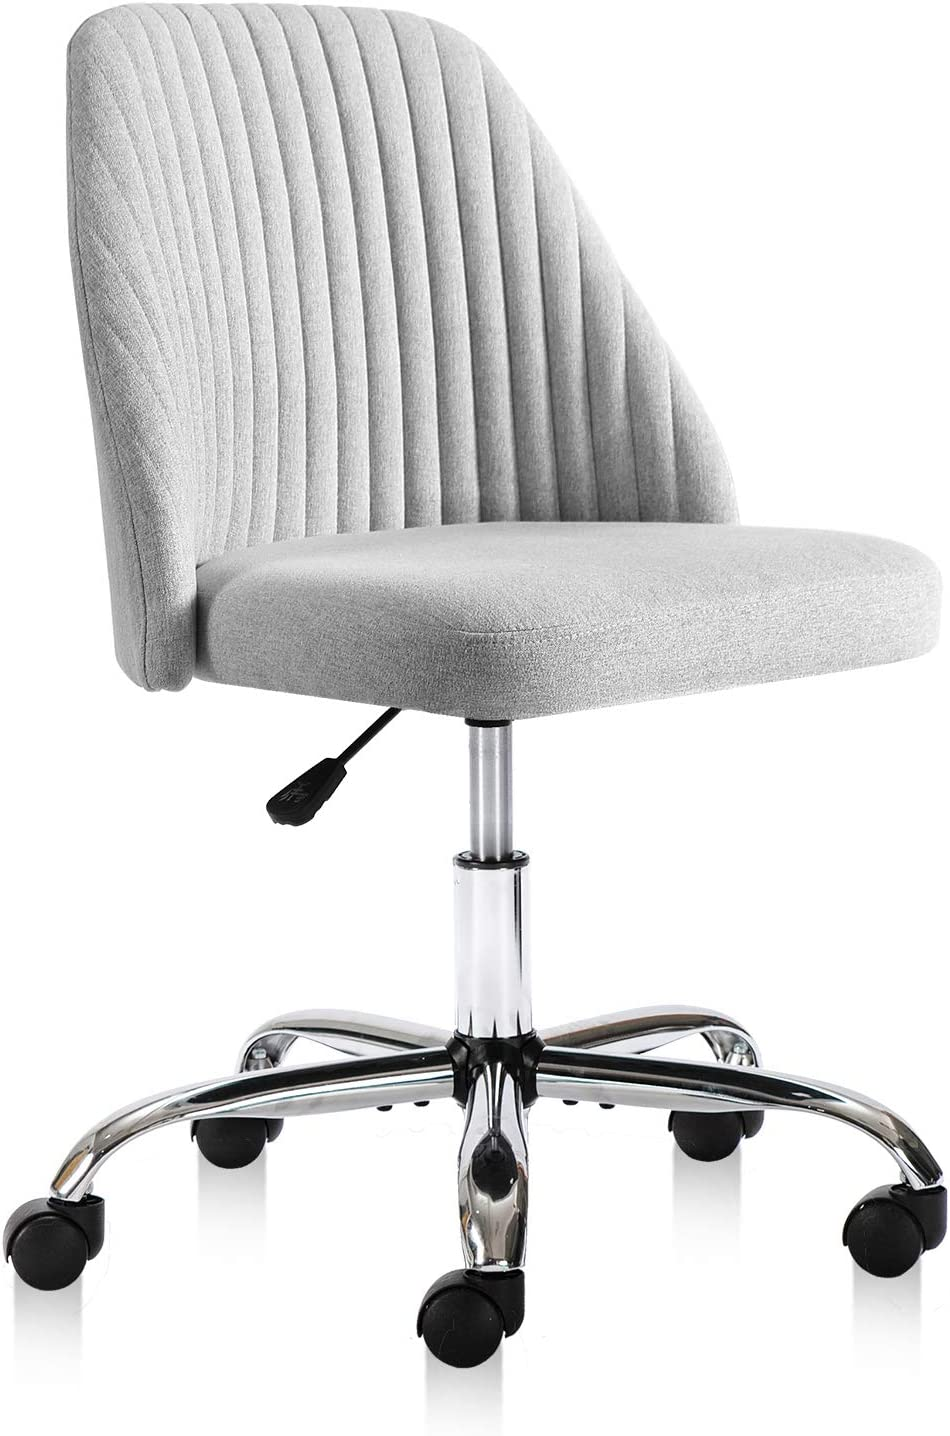 716u385 yJL. AC SL1500 - What Is The Best Office Chair For Short Person With Back Pain - ChairPicks